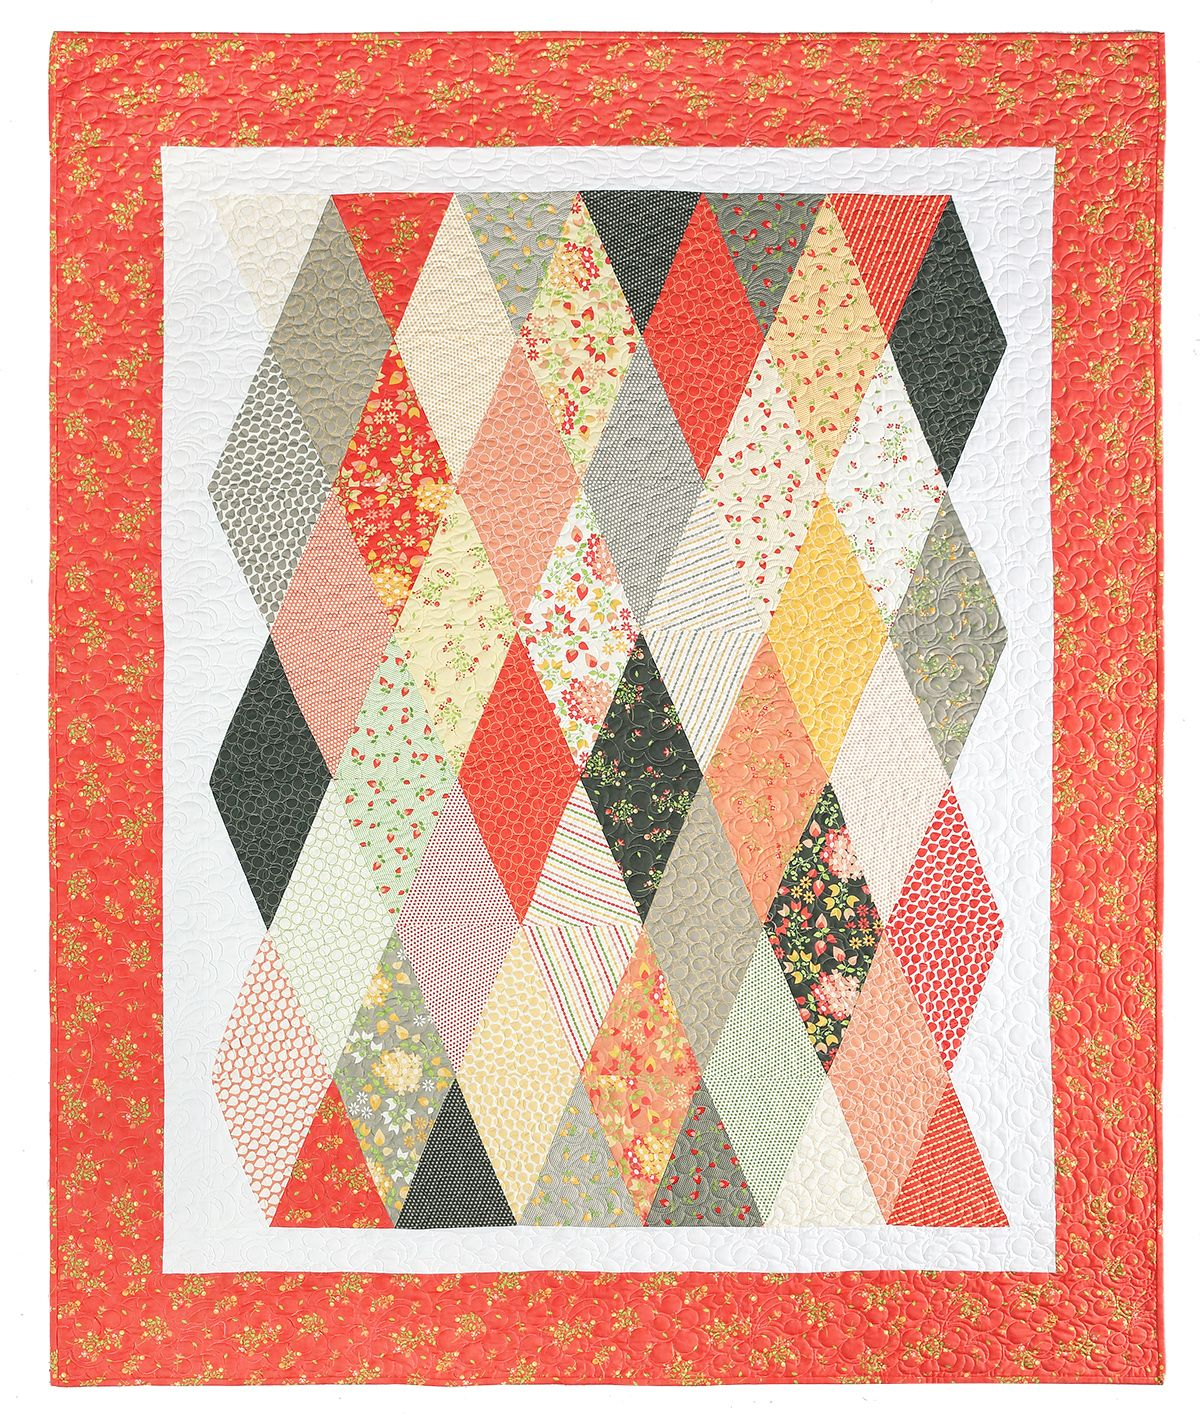 Make A Stunning Simple Diamond Quilt With Jenny Doan Of Missouri Star Quilt Co Missouri Star Quilt Company Tutorials Missouri Star Quilt Company Quilts